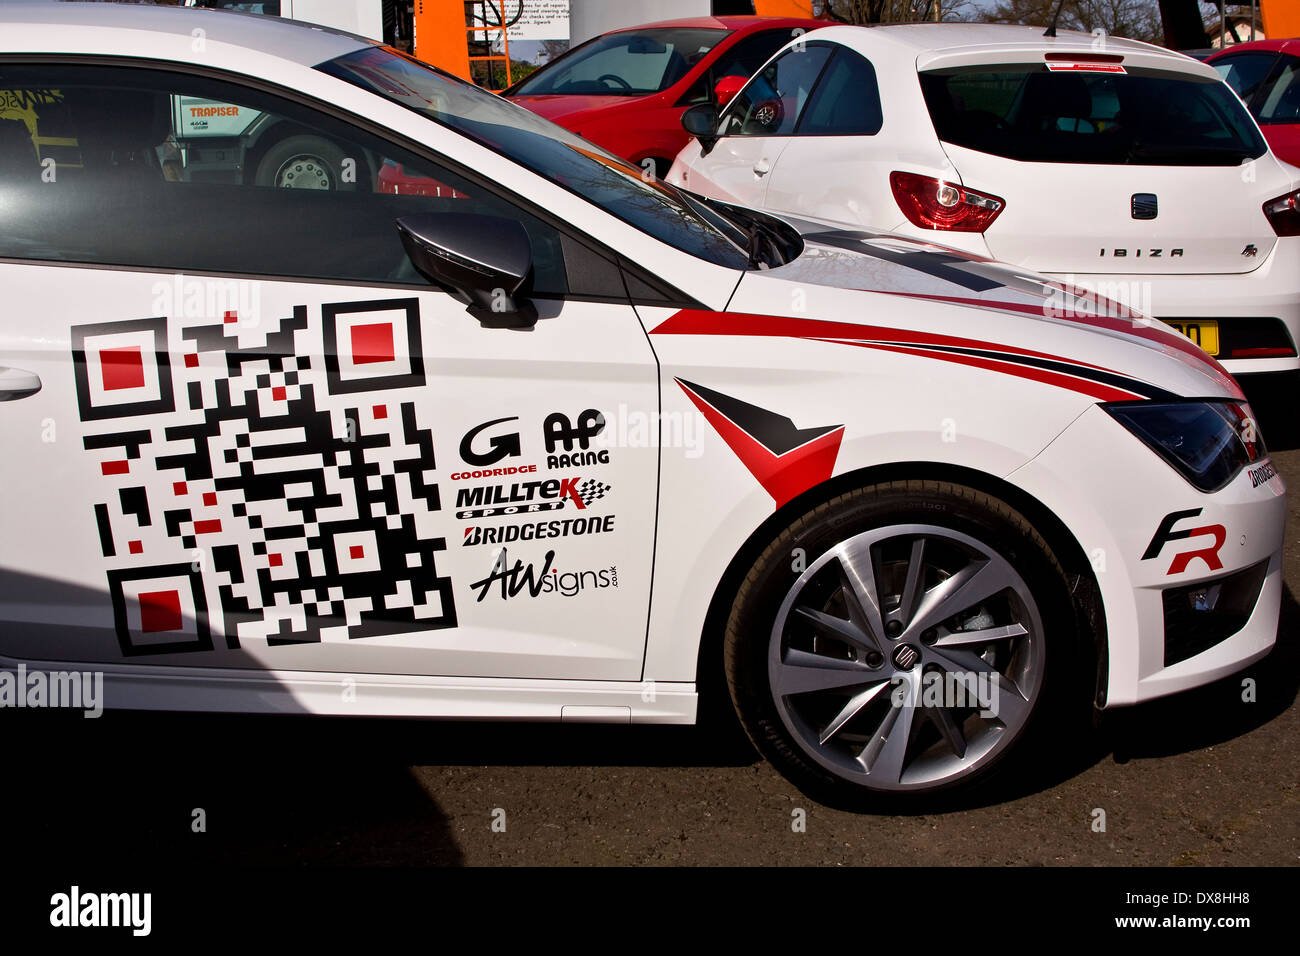 Sport car sticker design - Stock Photo The New Seat Leon Sports Car With I Phone Application Stickers On The Door At The Alistair Fleming Car Showroom In Dundee Uk